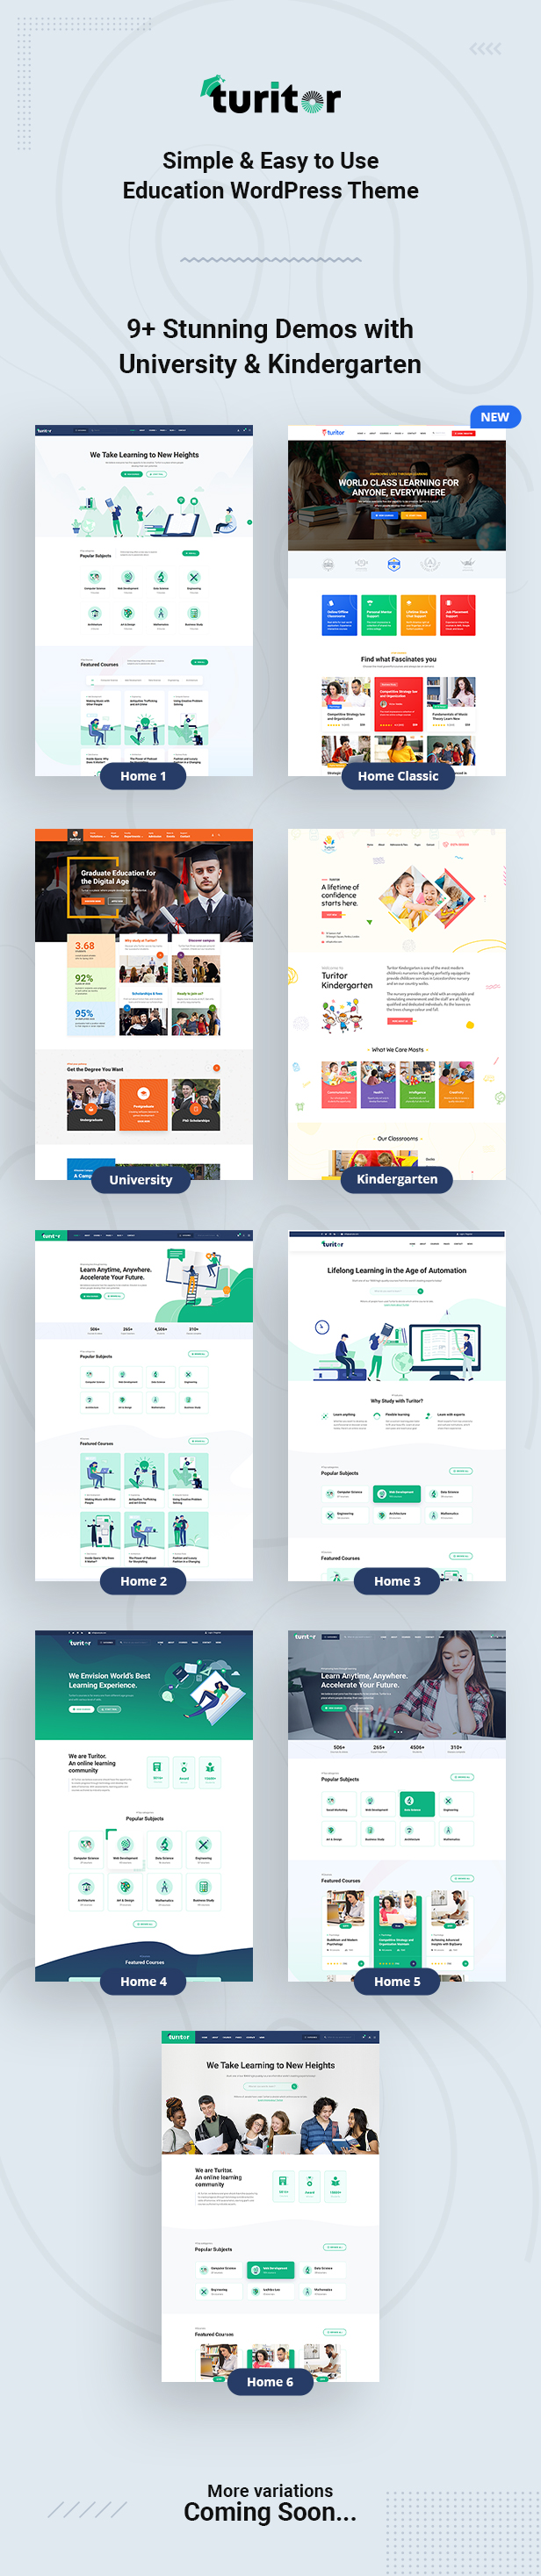 Turitor Education WordPress Theme